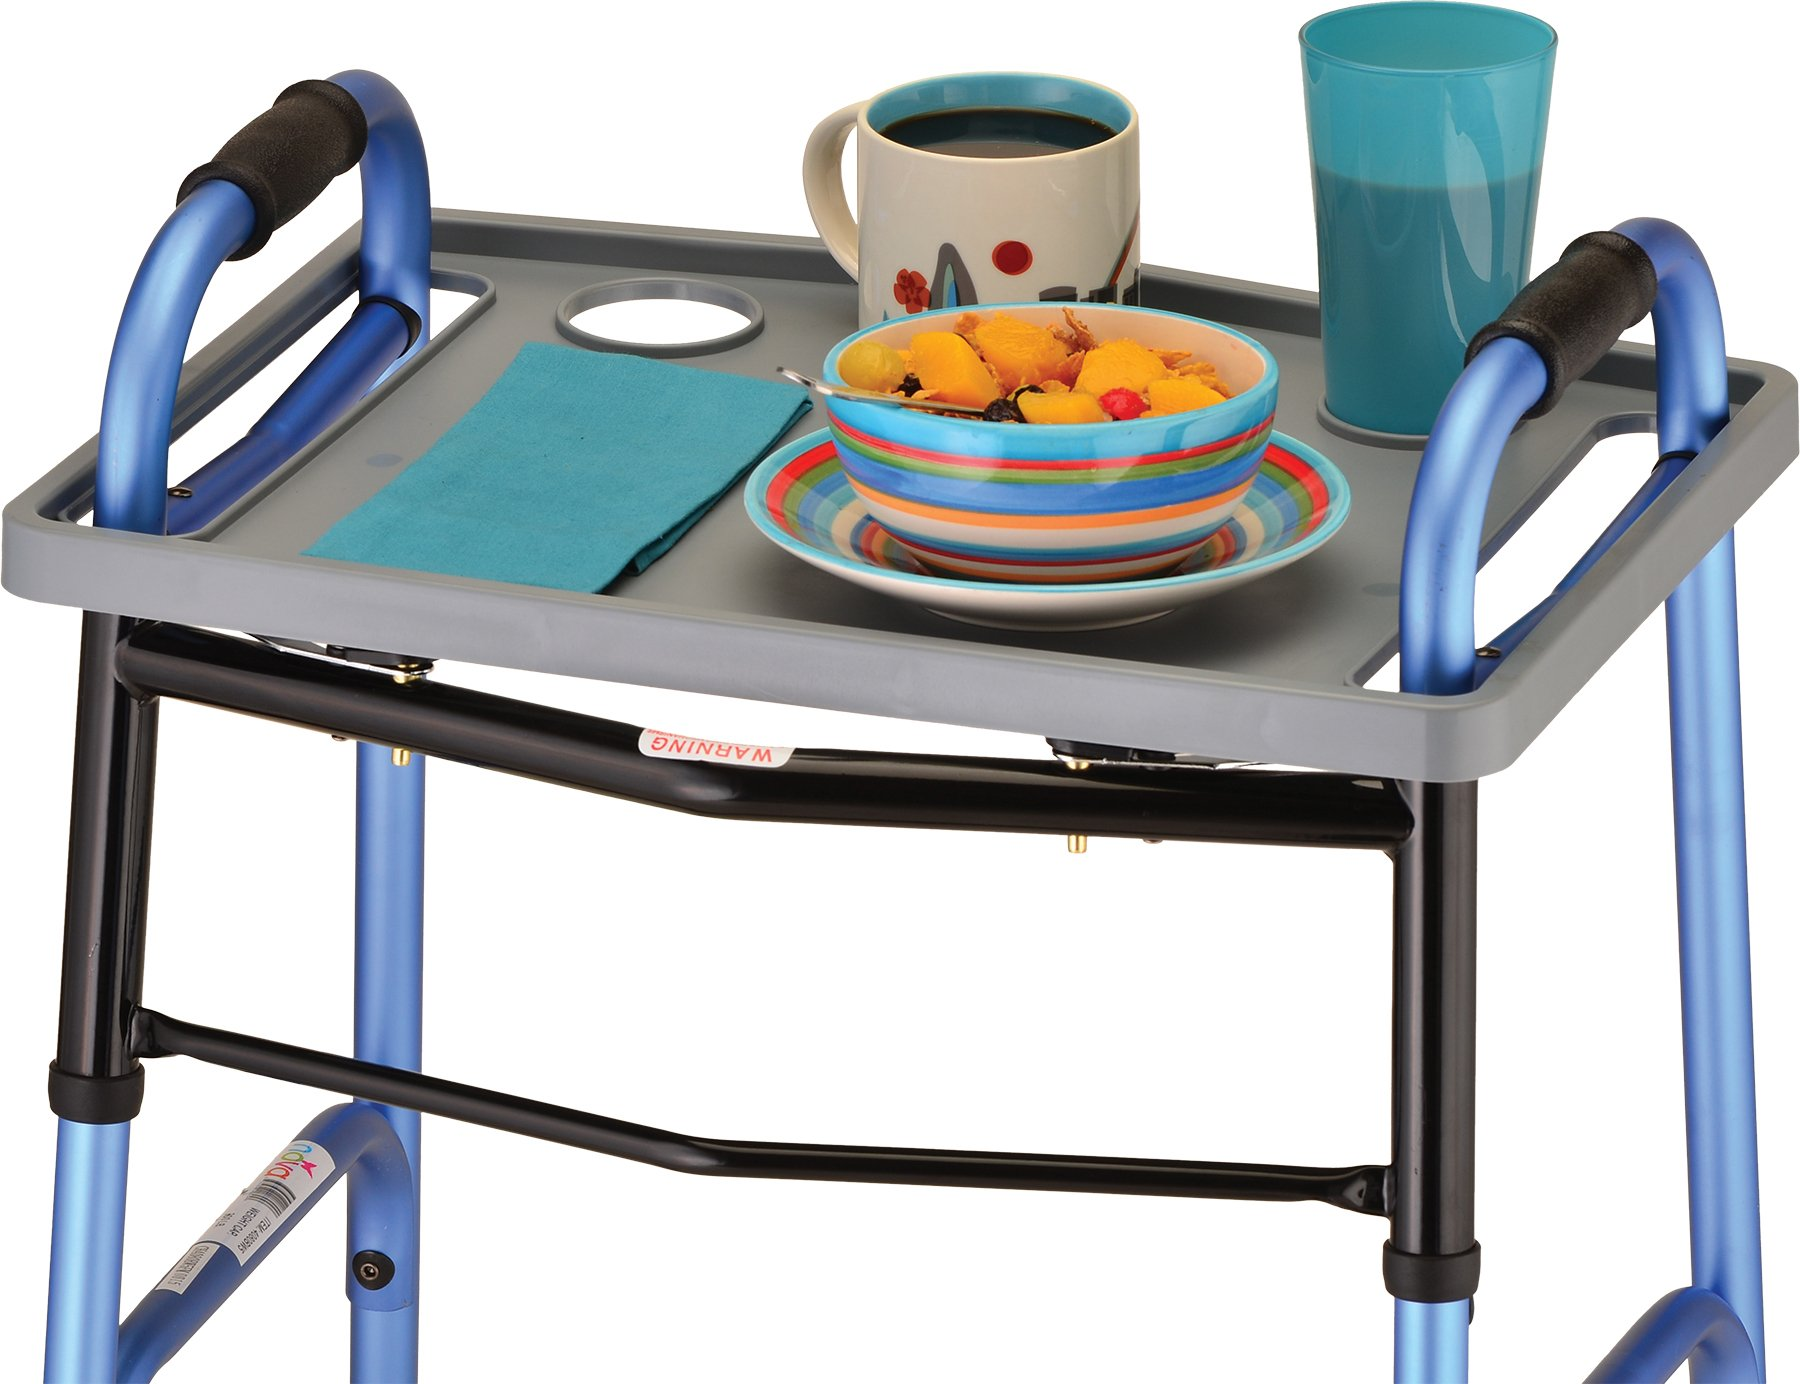 NOVA Walker Tray, Food Tray with 2 Cup Holders for Folding Walker, Universal Fit